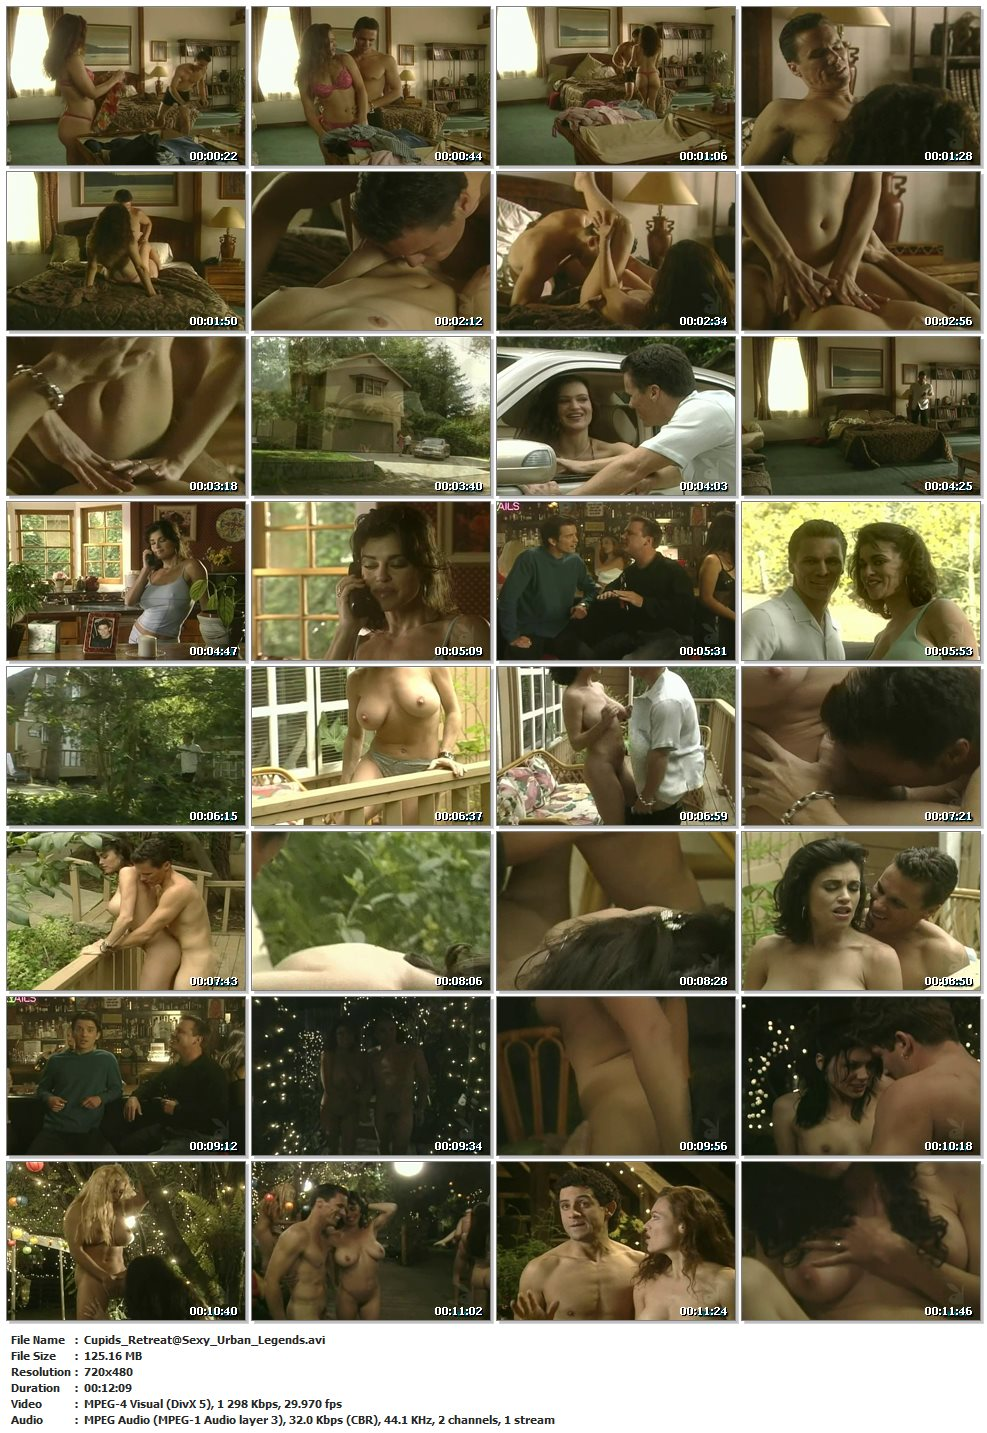 Erotiquem6 sexy dancing threesome erotic scene - 5 4